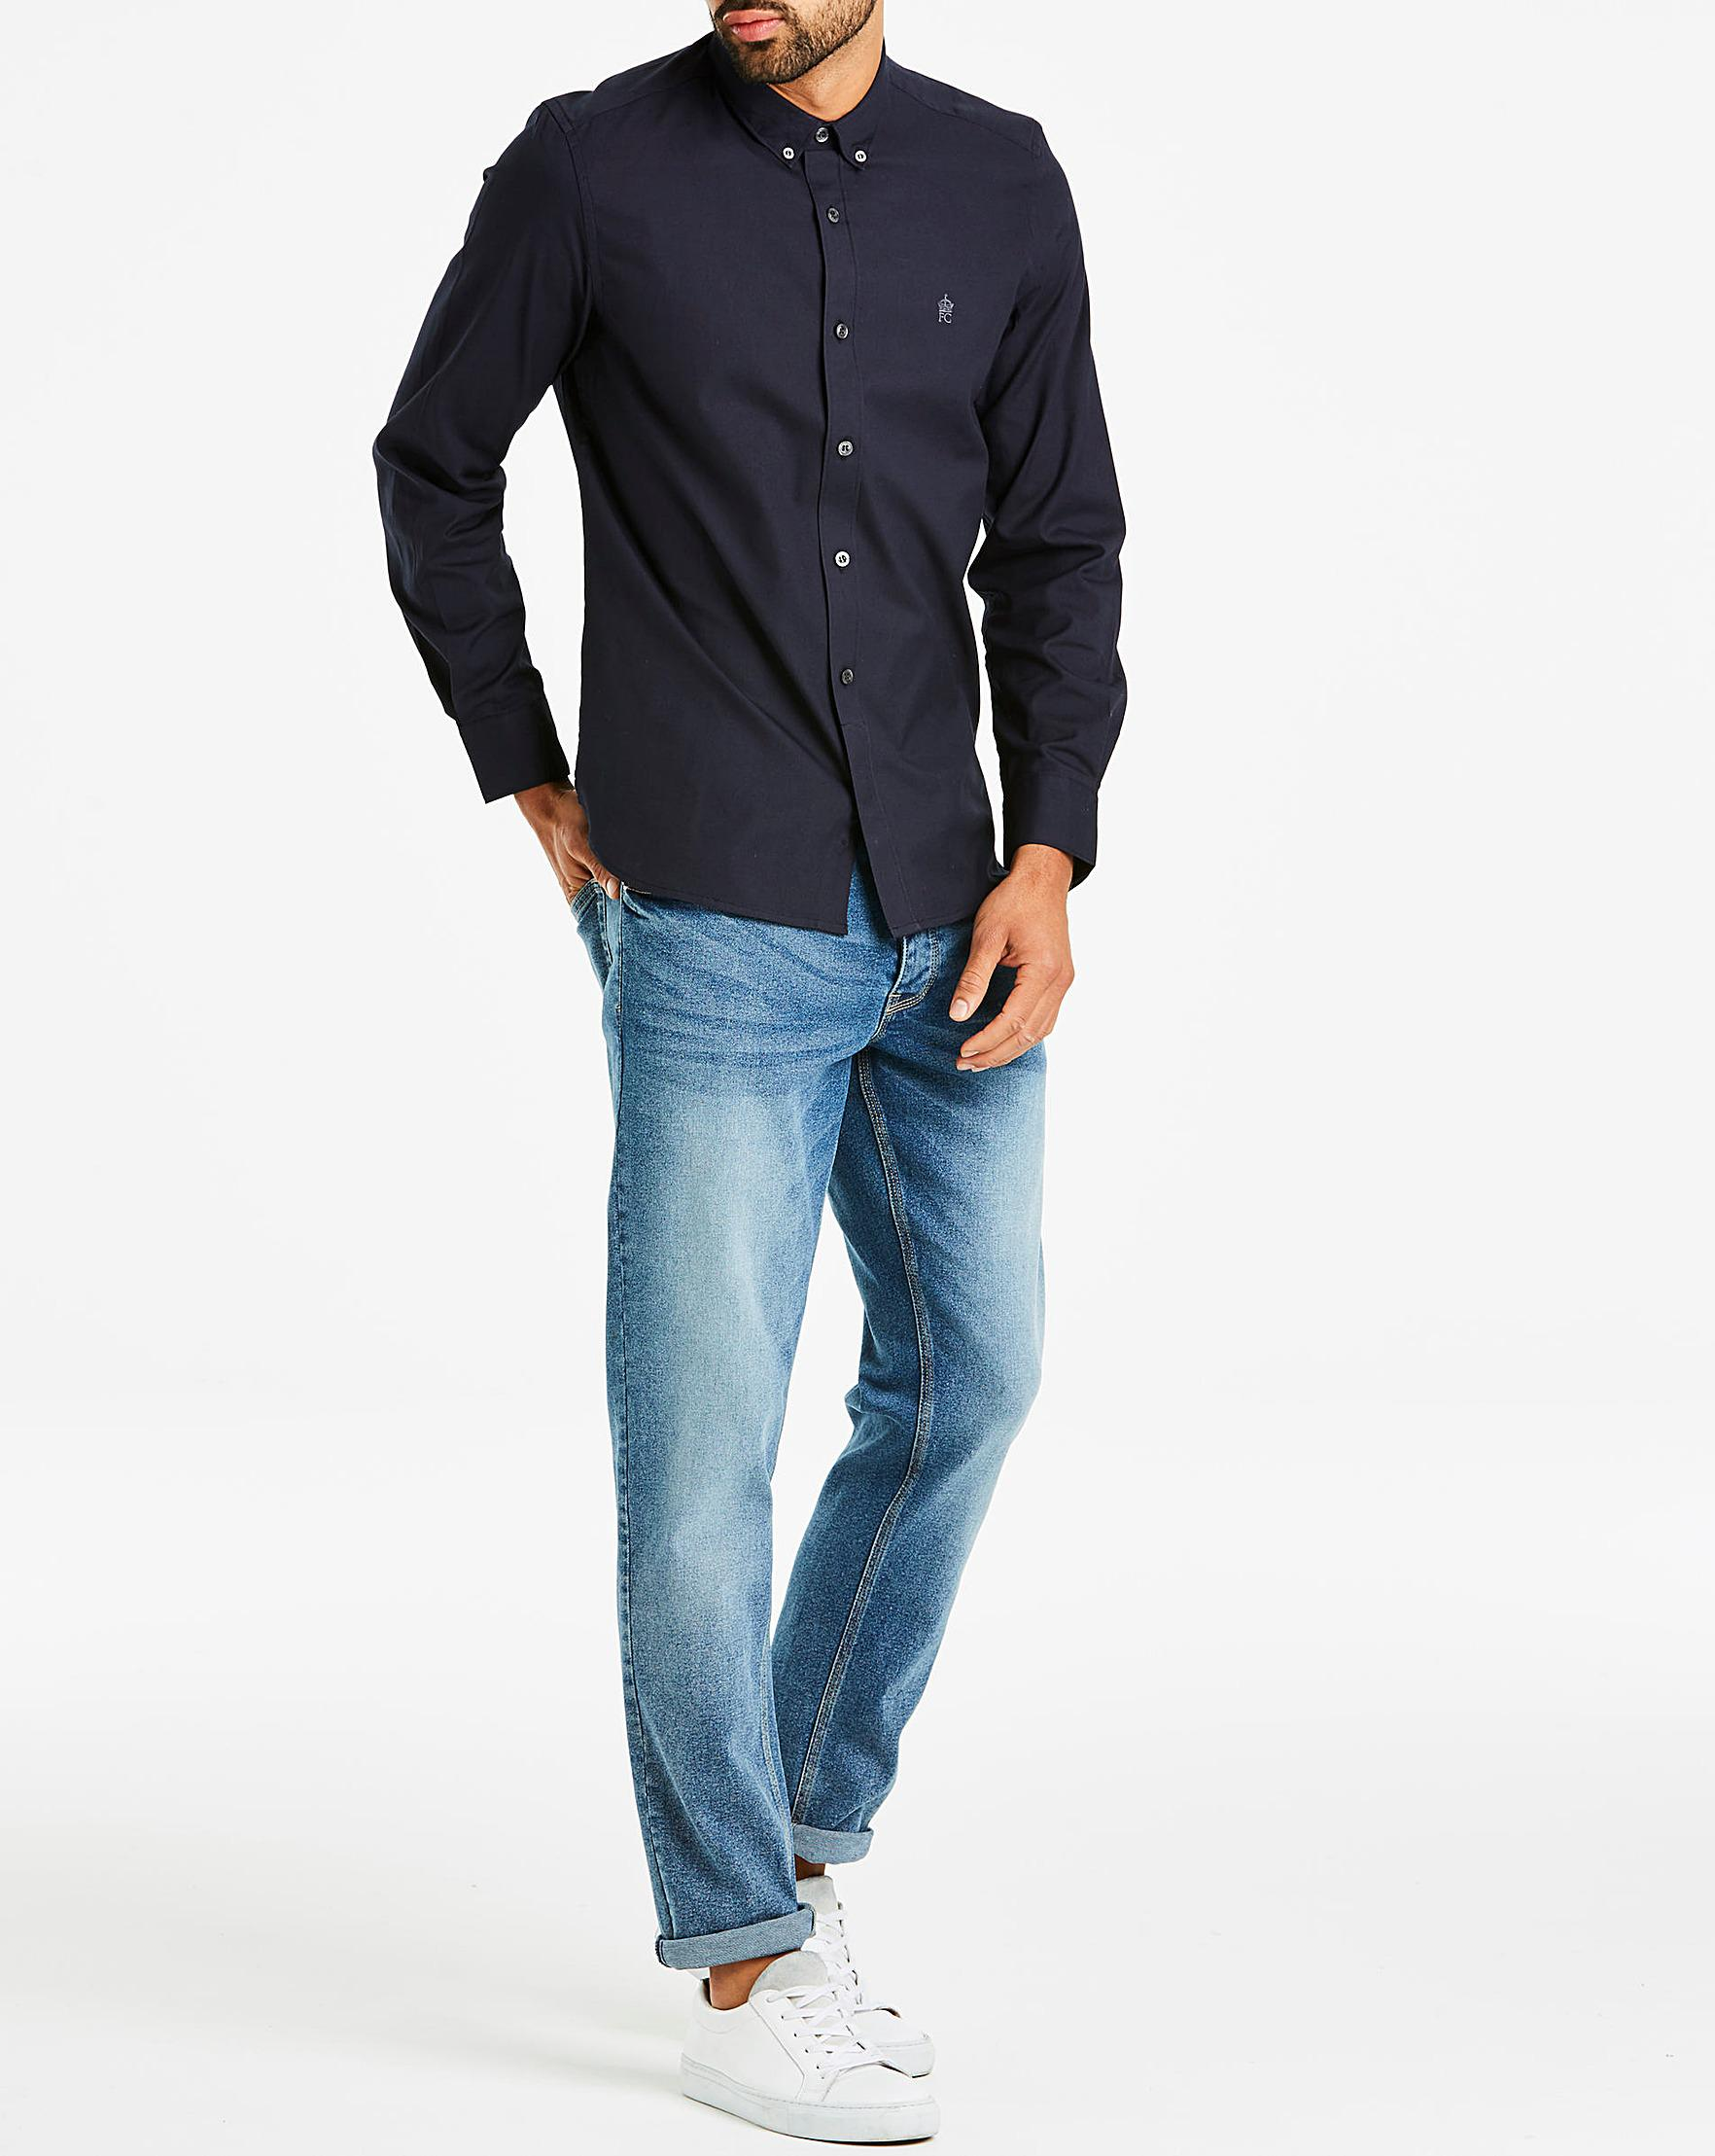 a366ed463ad French Connection Oxford Shirt in Blue for Men - Lyst